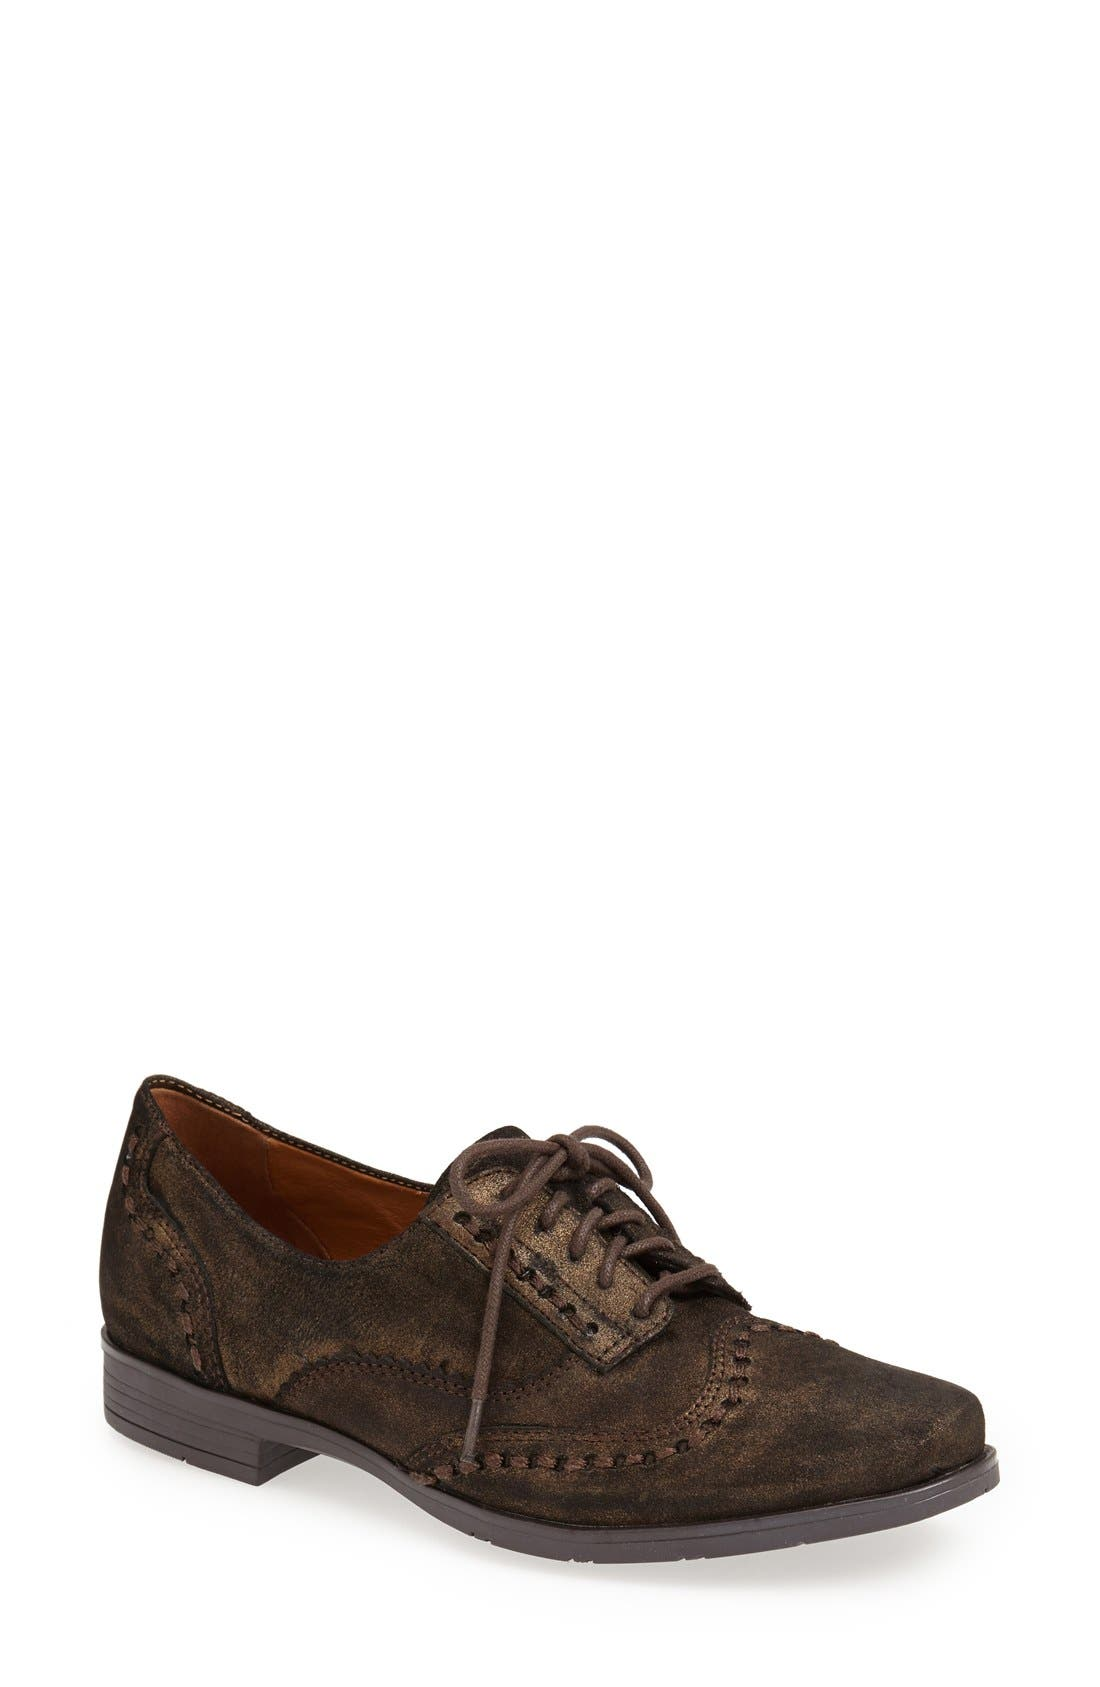 Alternate Image 1 Selected - Earthies® 'Lisbon' Pearlized Suede Lace-Up Flat (Women)